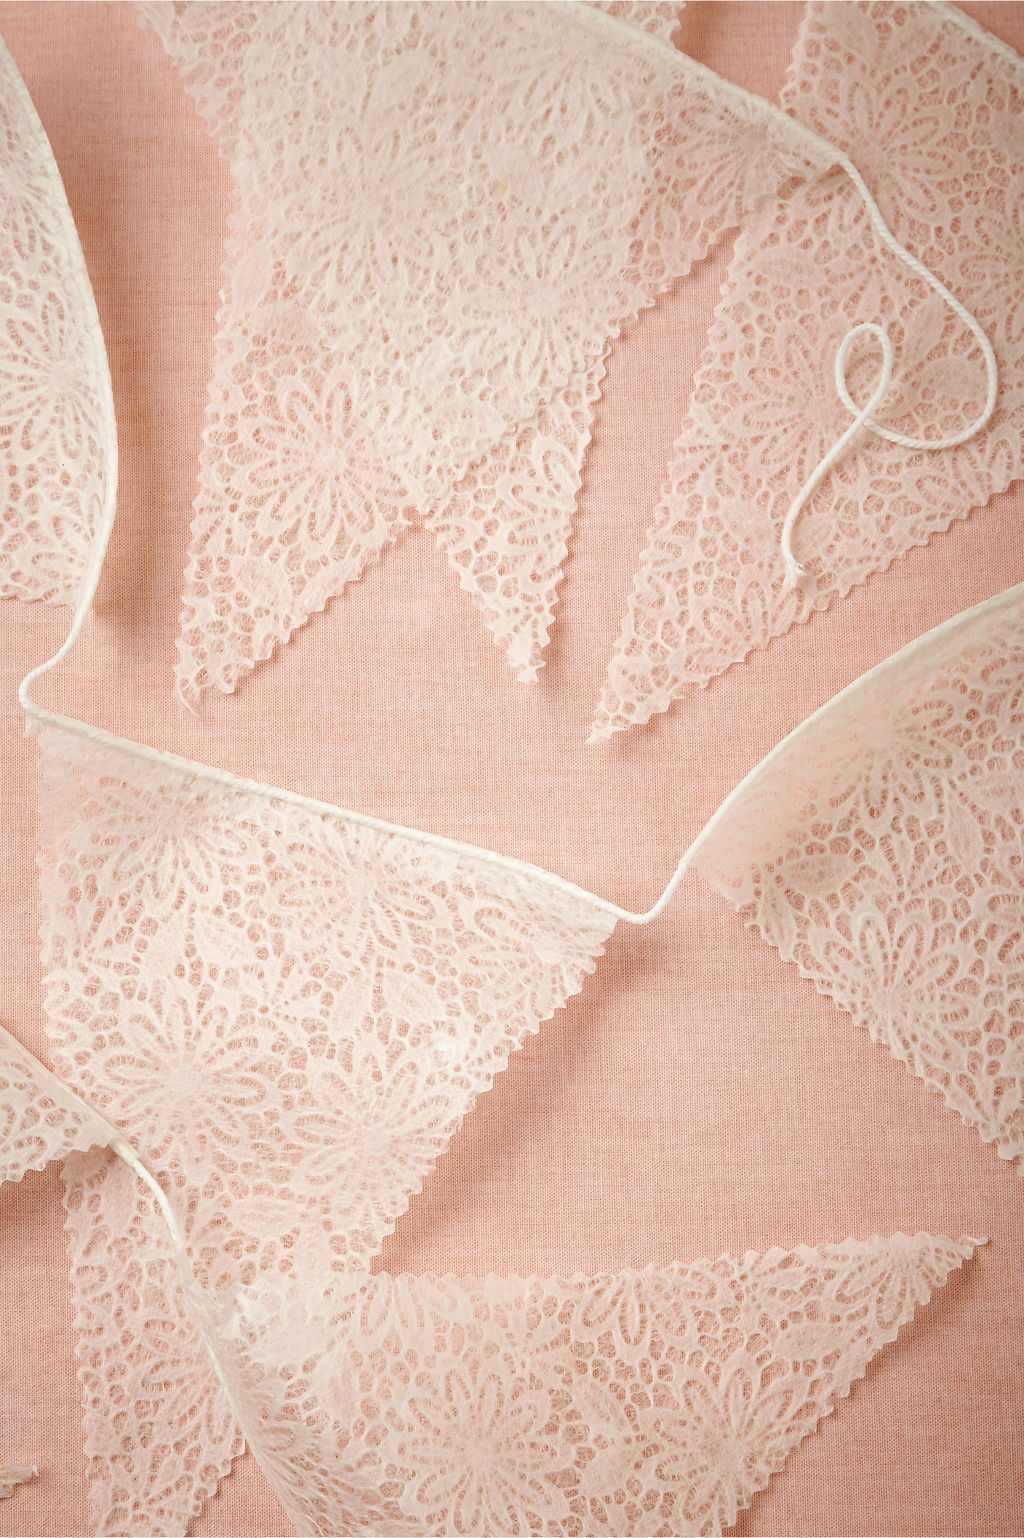 Lace%20pennant%20garland.full